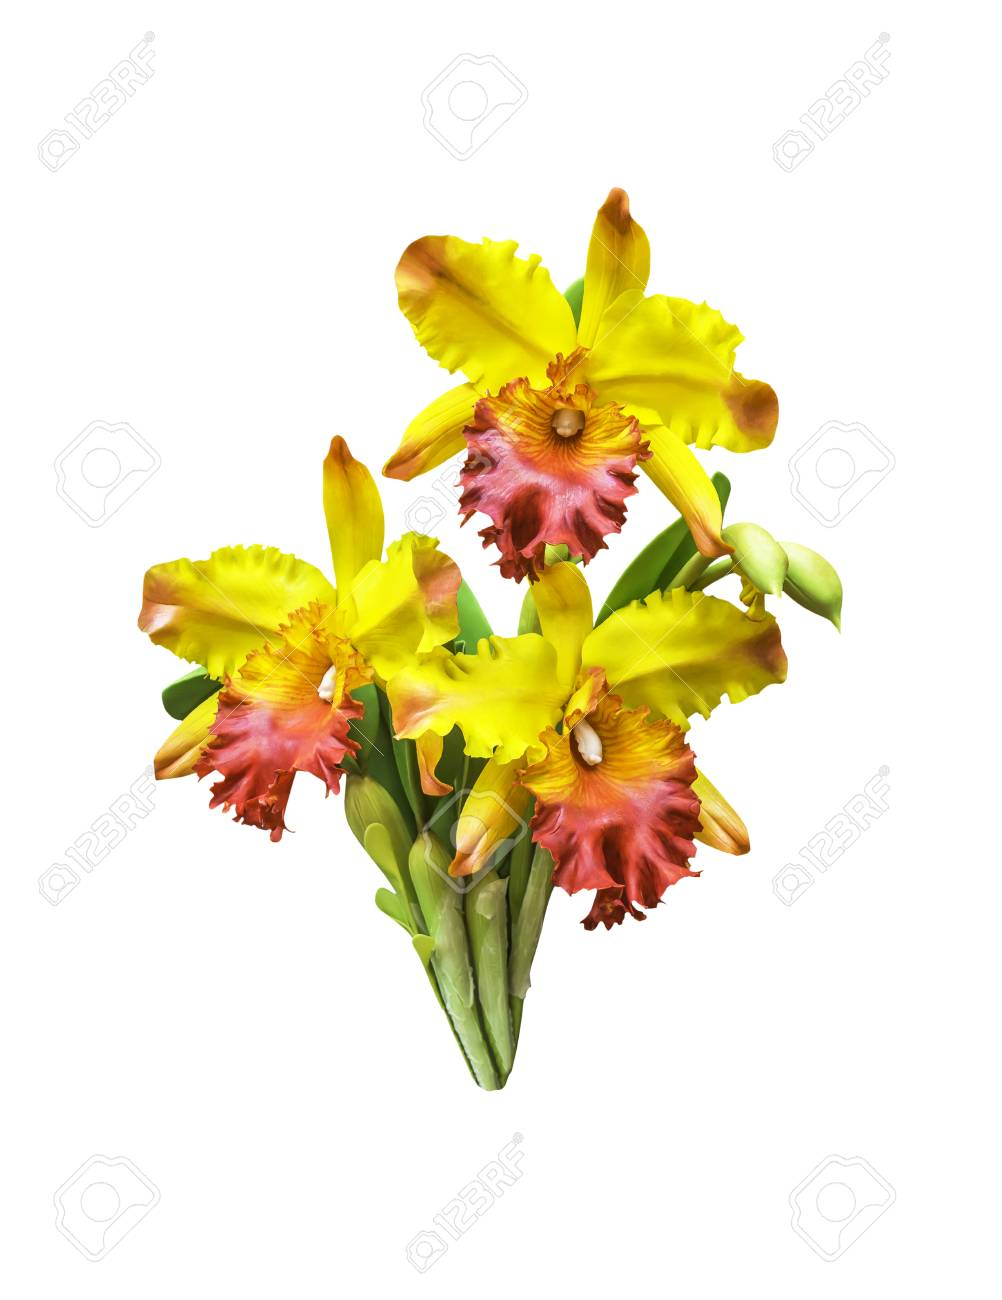 Artificial bouquet orchid flower isolated on white with clipping artificial bouquet orchid flower isolated on white with clipping path stock photo 74010326 izmirmasajfo